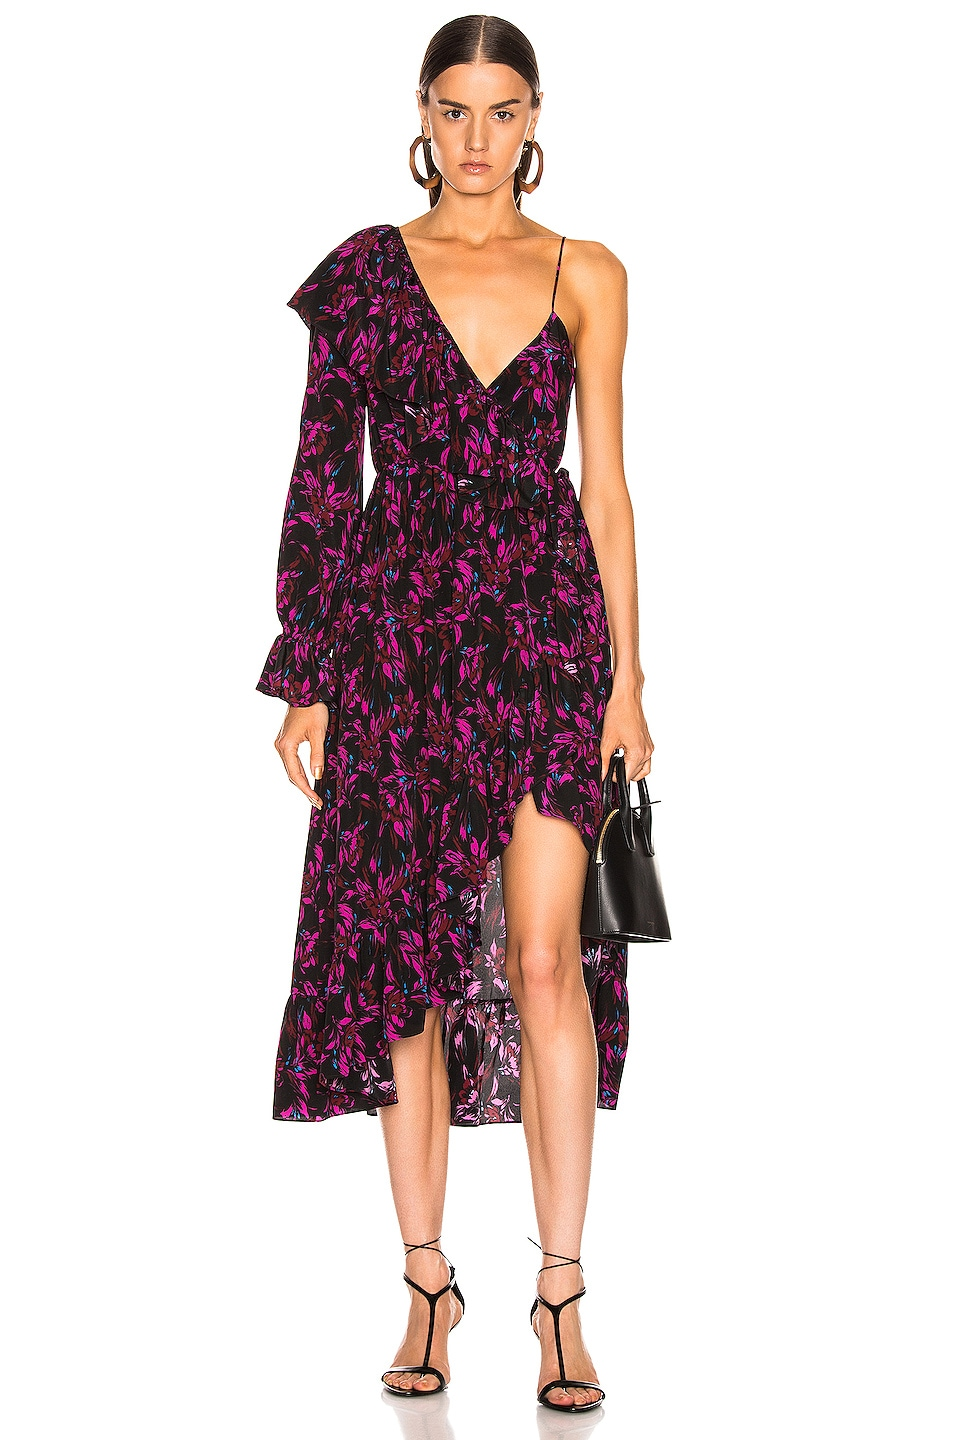 Image 1 of Les Reveries Asymmetrical Ruffle Wrap Dress in Wispy Floral Black